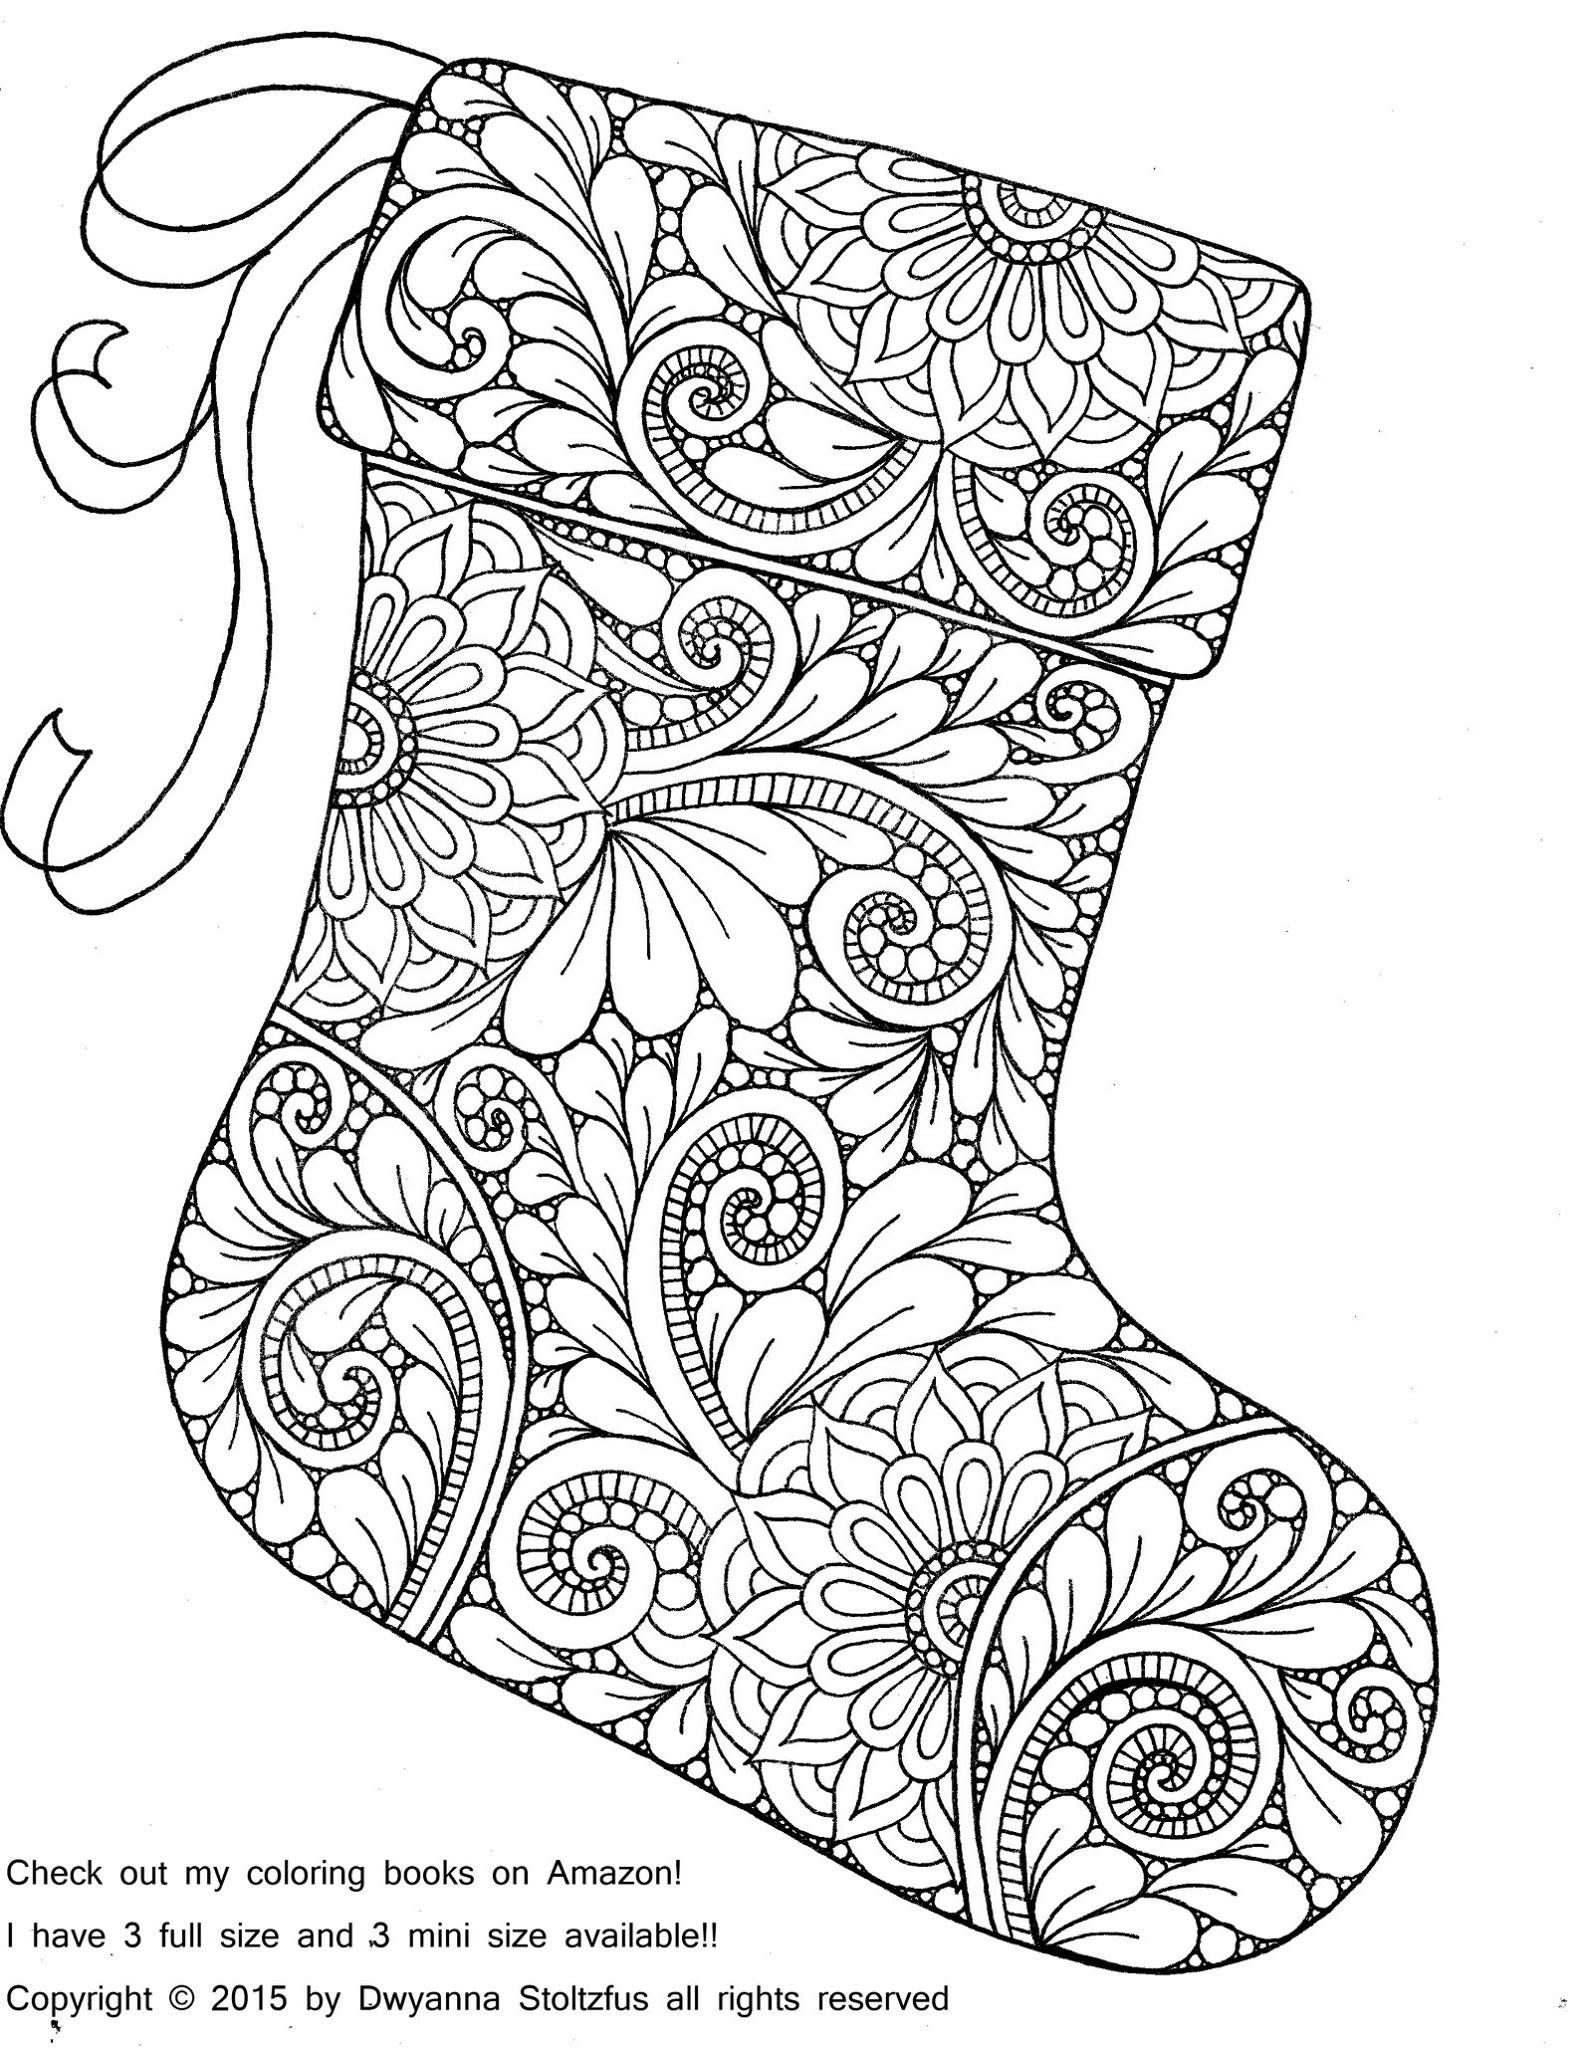 Christmas stocking coloring page | COLORING FOR BIG KIDS | Pinterest ...